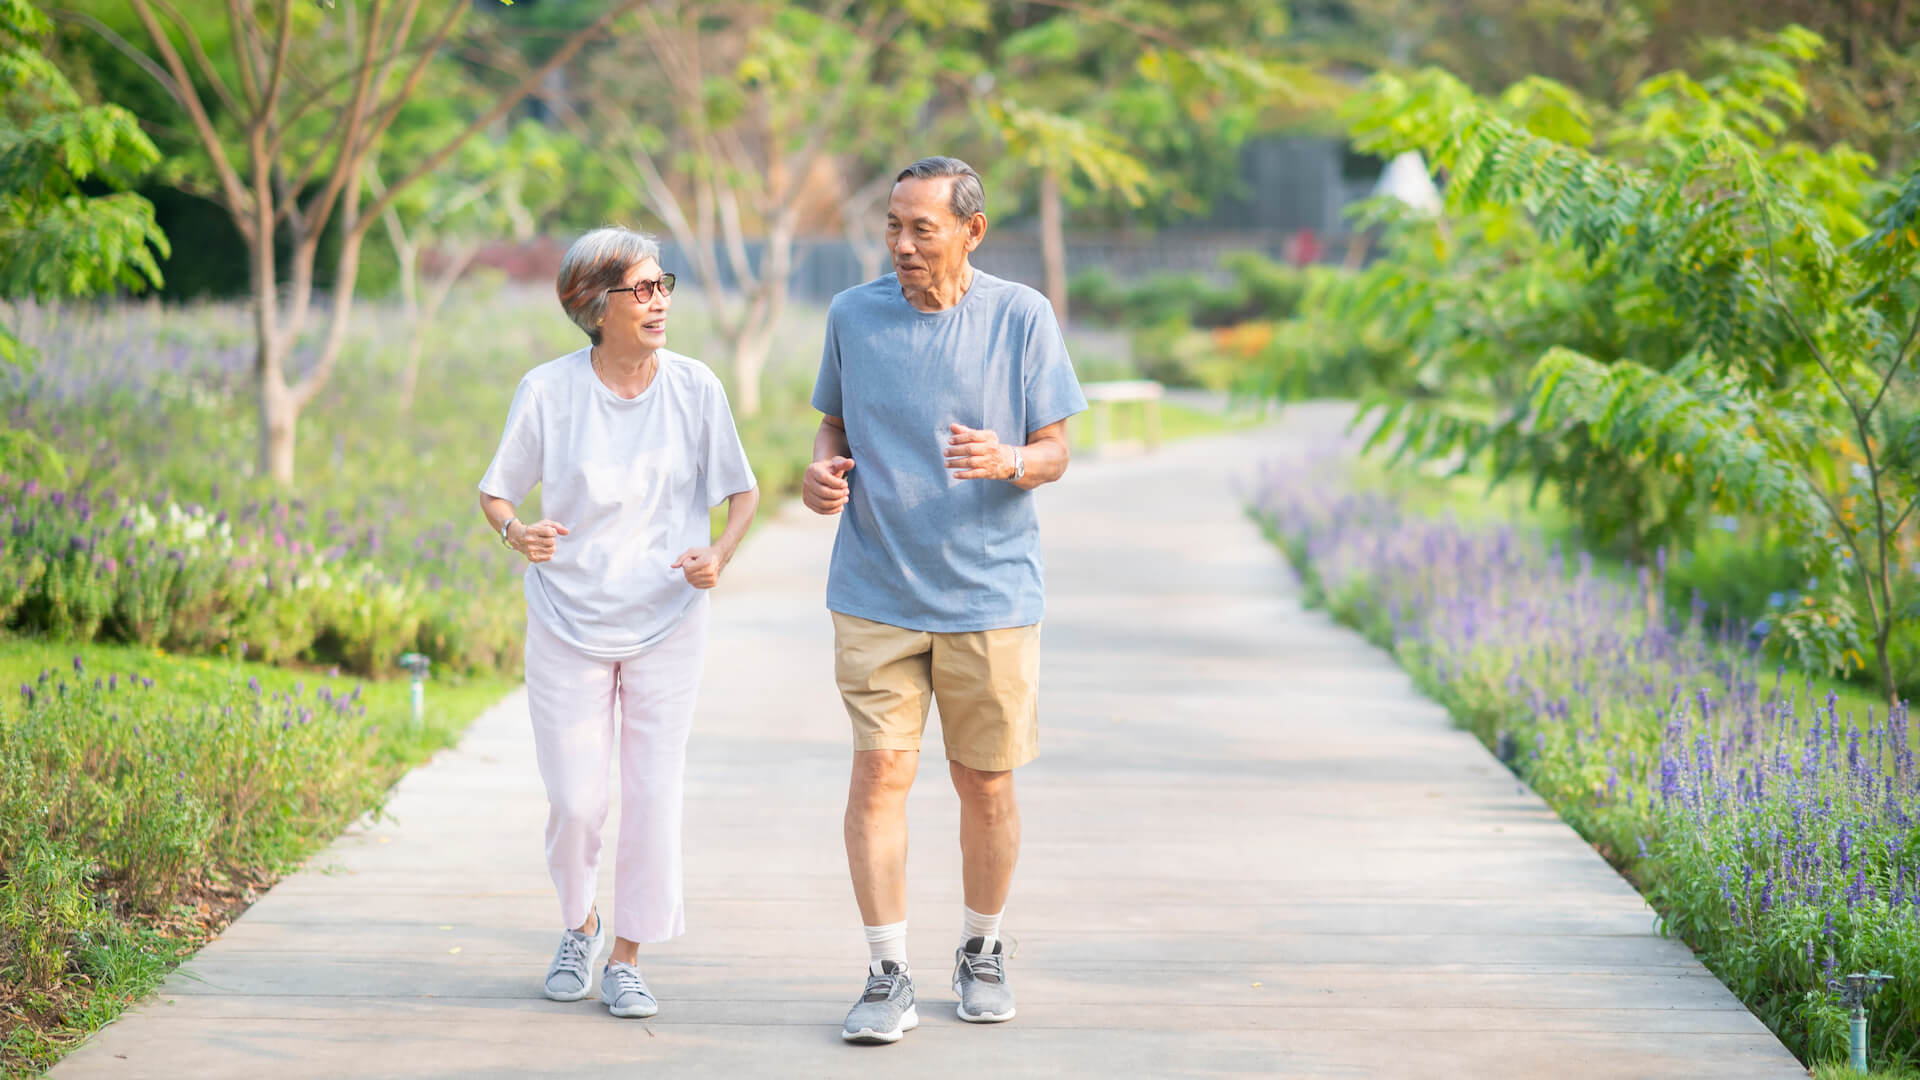 Asian senior retired couple jogging or exercise in the park. Healthy elderly people concept